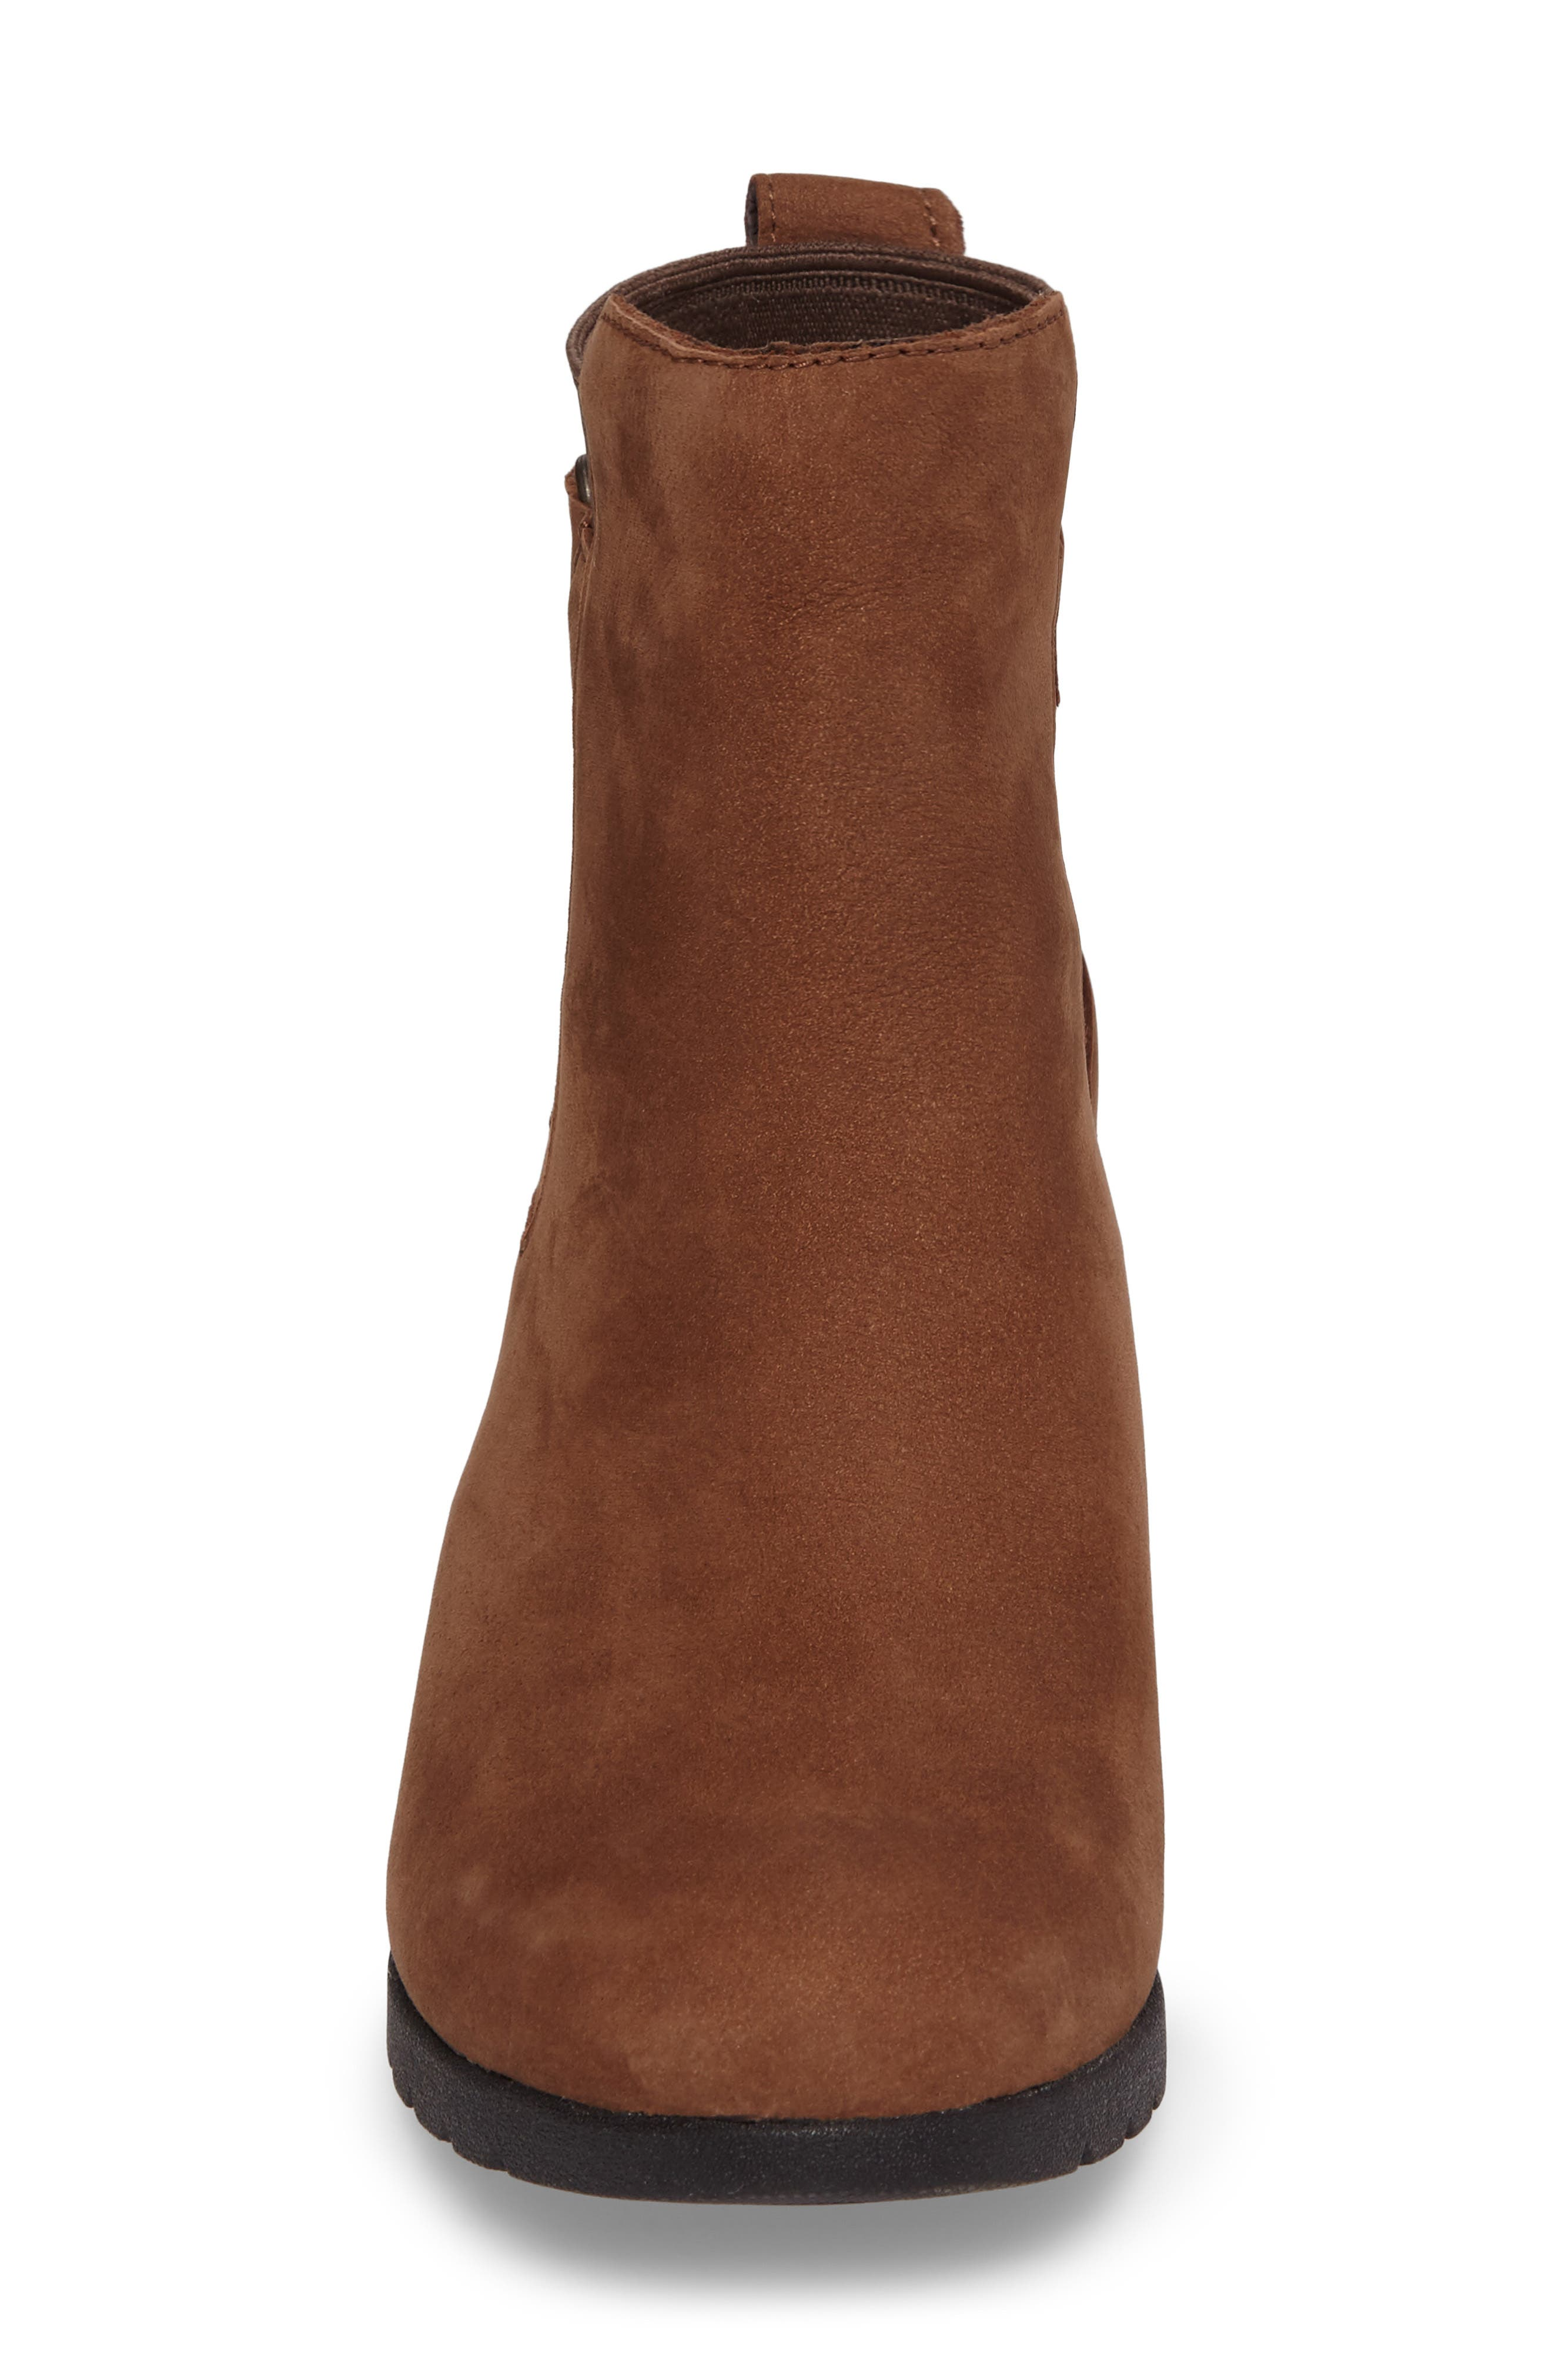 Waterproof Insulated Wedge Boot,                             Alternate thumbnail 4, color,                             STOUT LEATHER